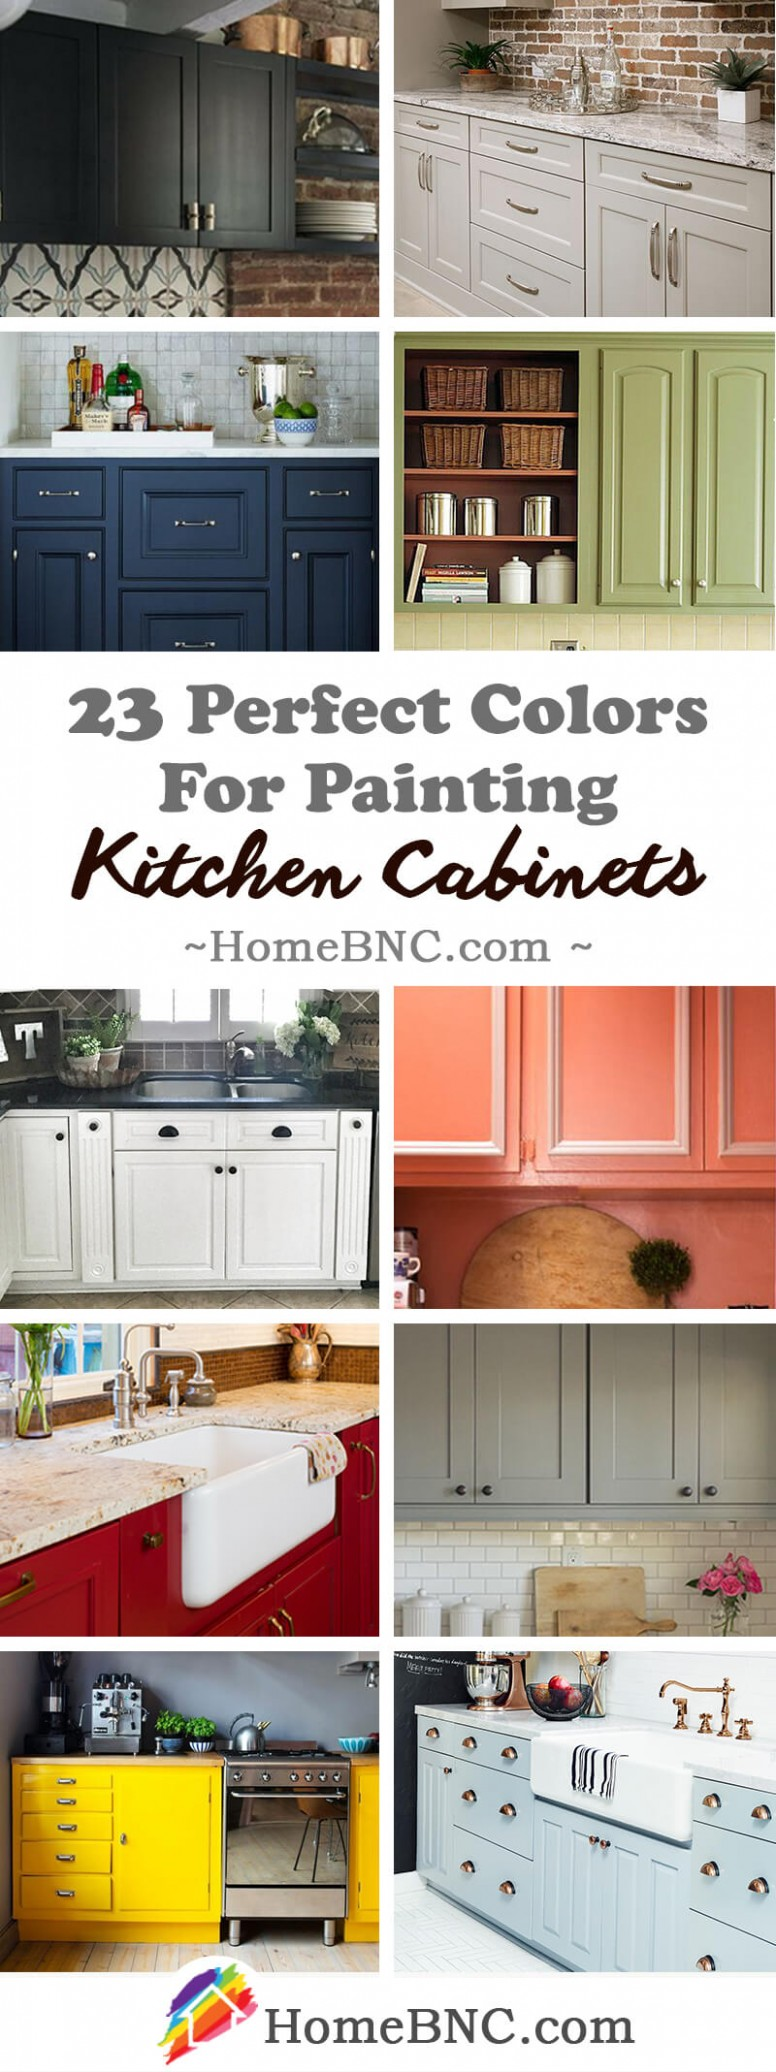 10 Best Kitchen Cabinets Painting Color Ideas and Designs for 10 - Ideas For Painting Kitchen Cabinets And Walls